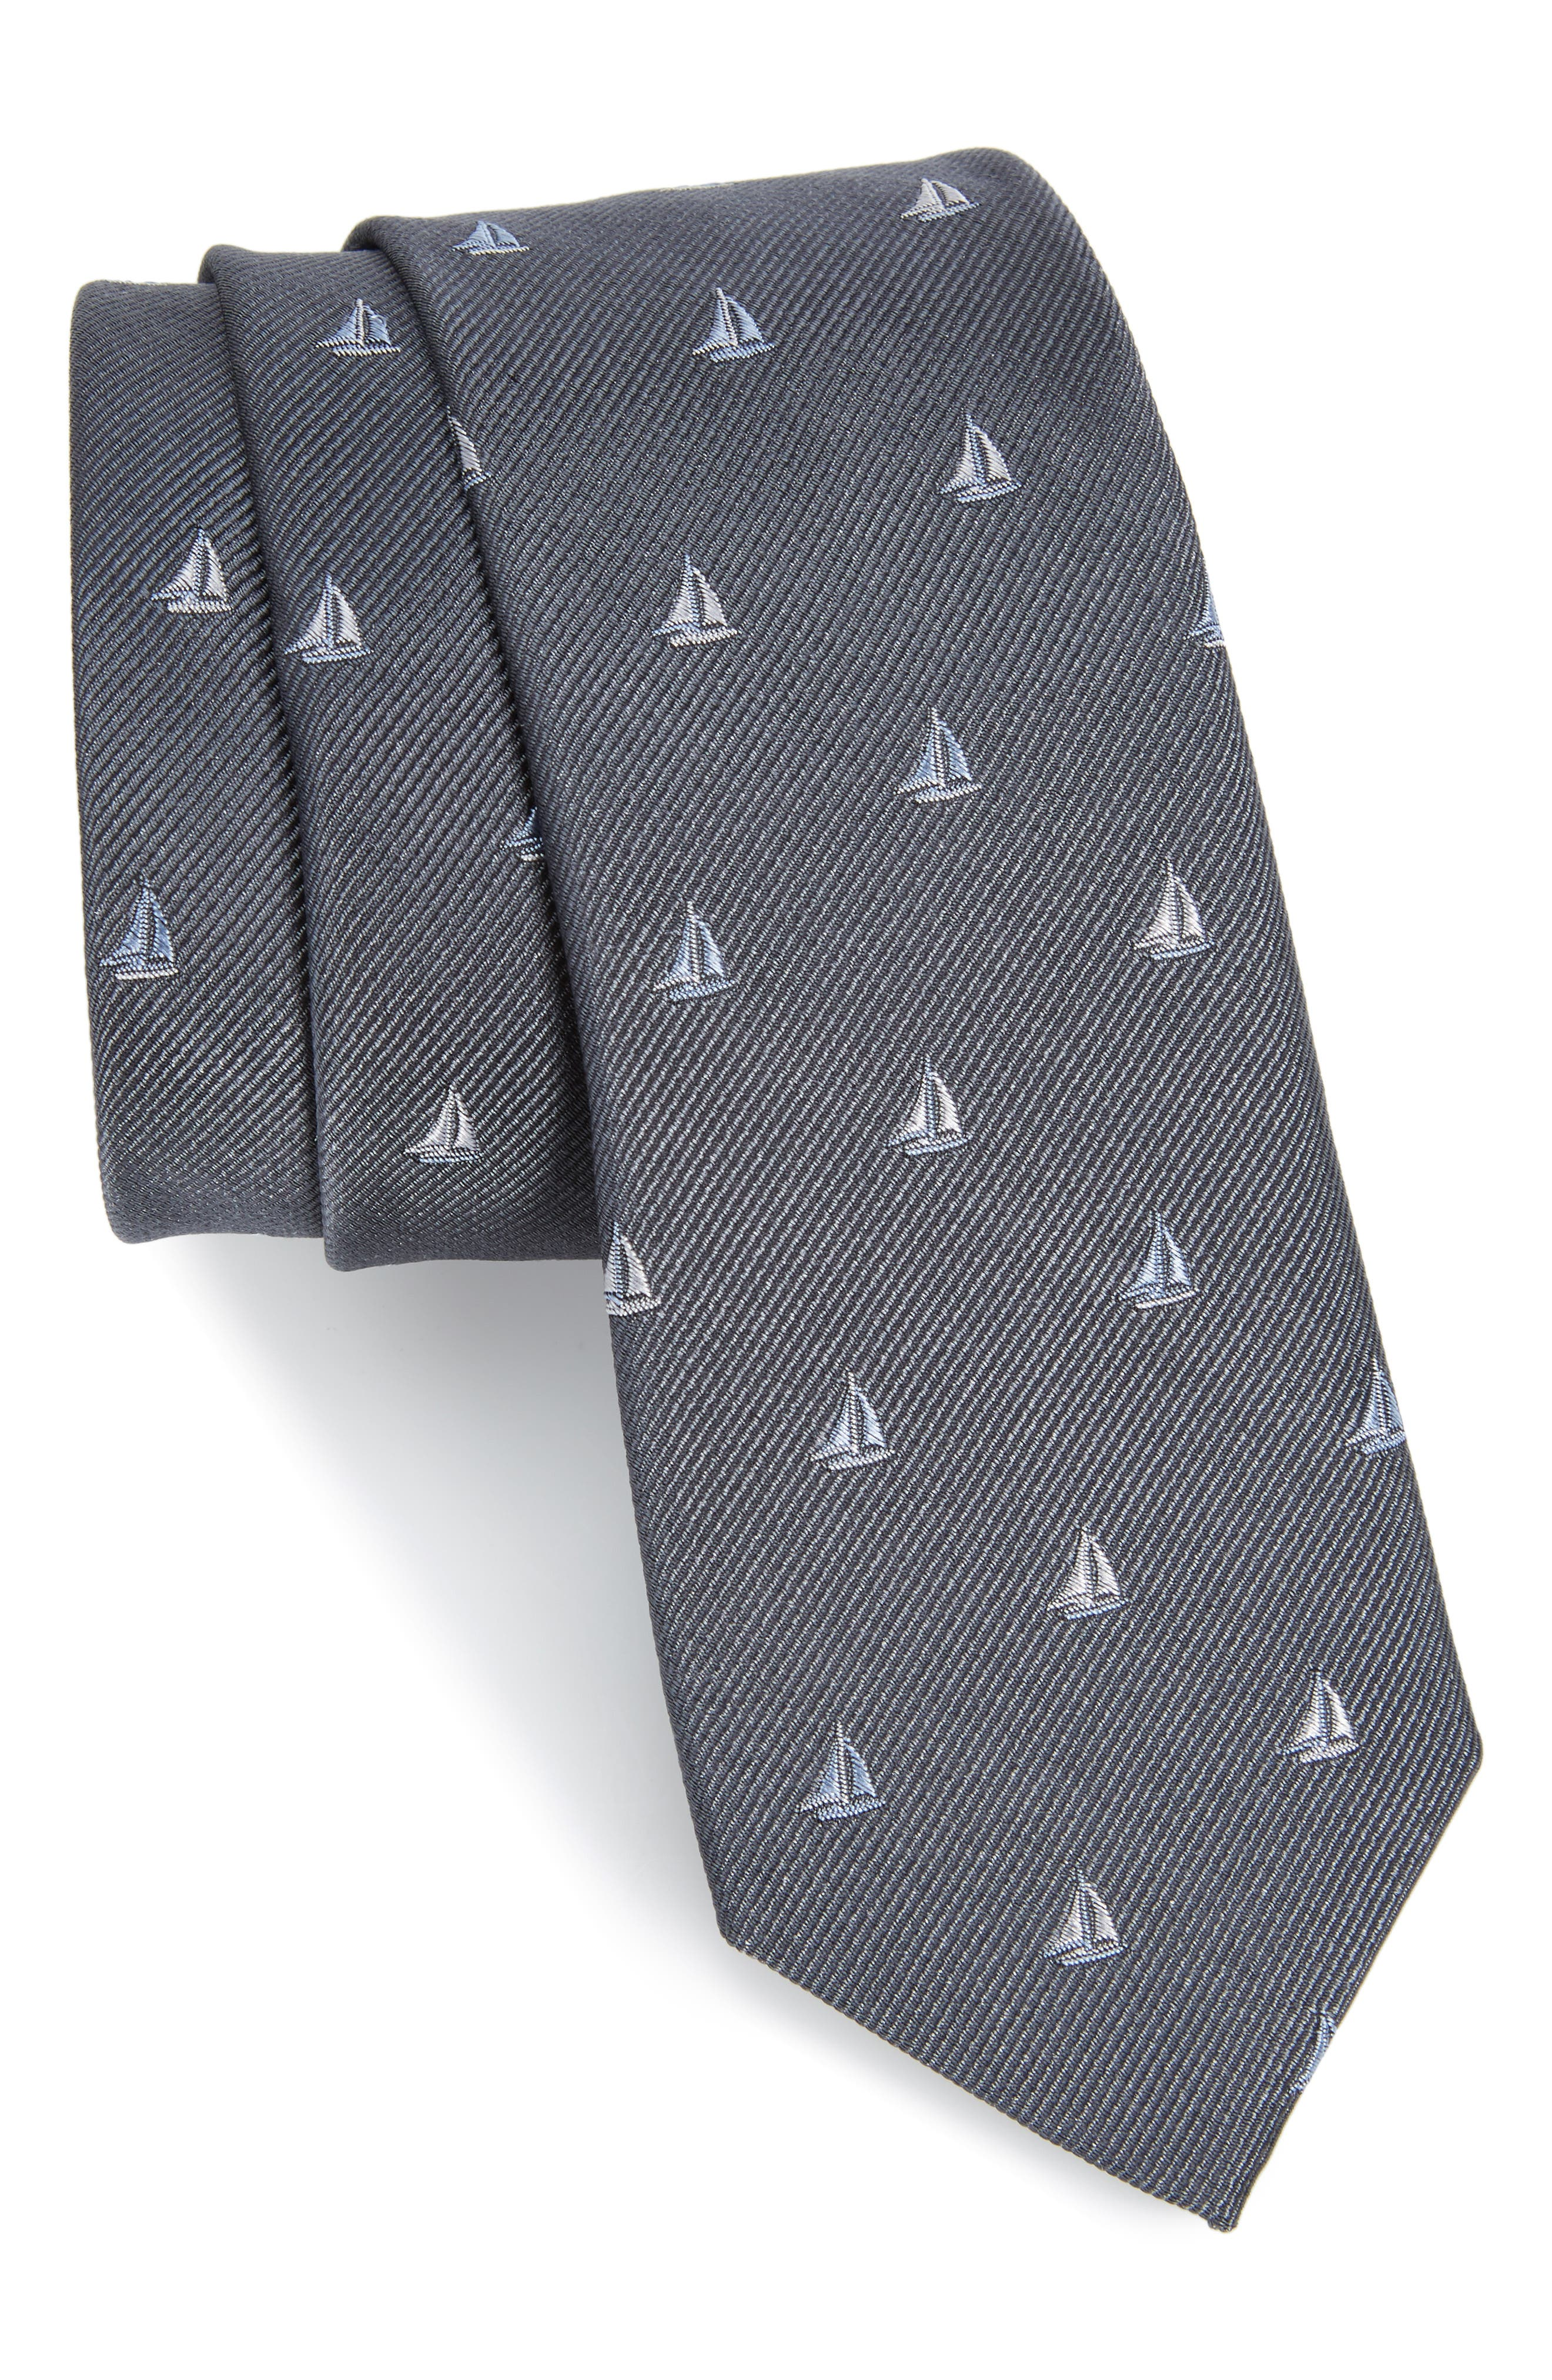 Sailboat Silk Skinny Tie,                             Main thumbnail 1, color,                             010